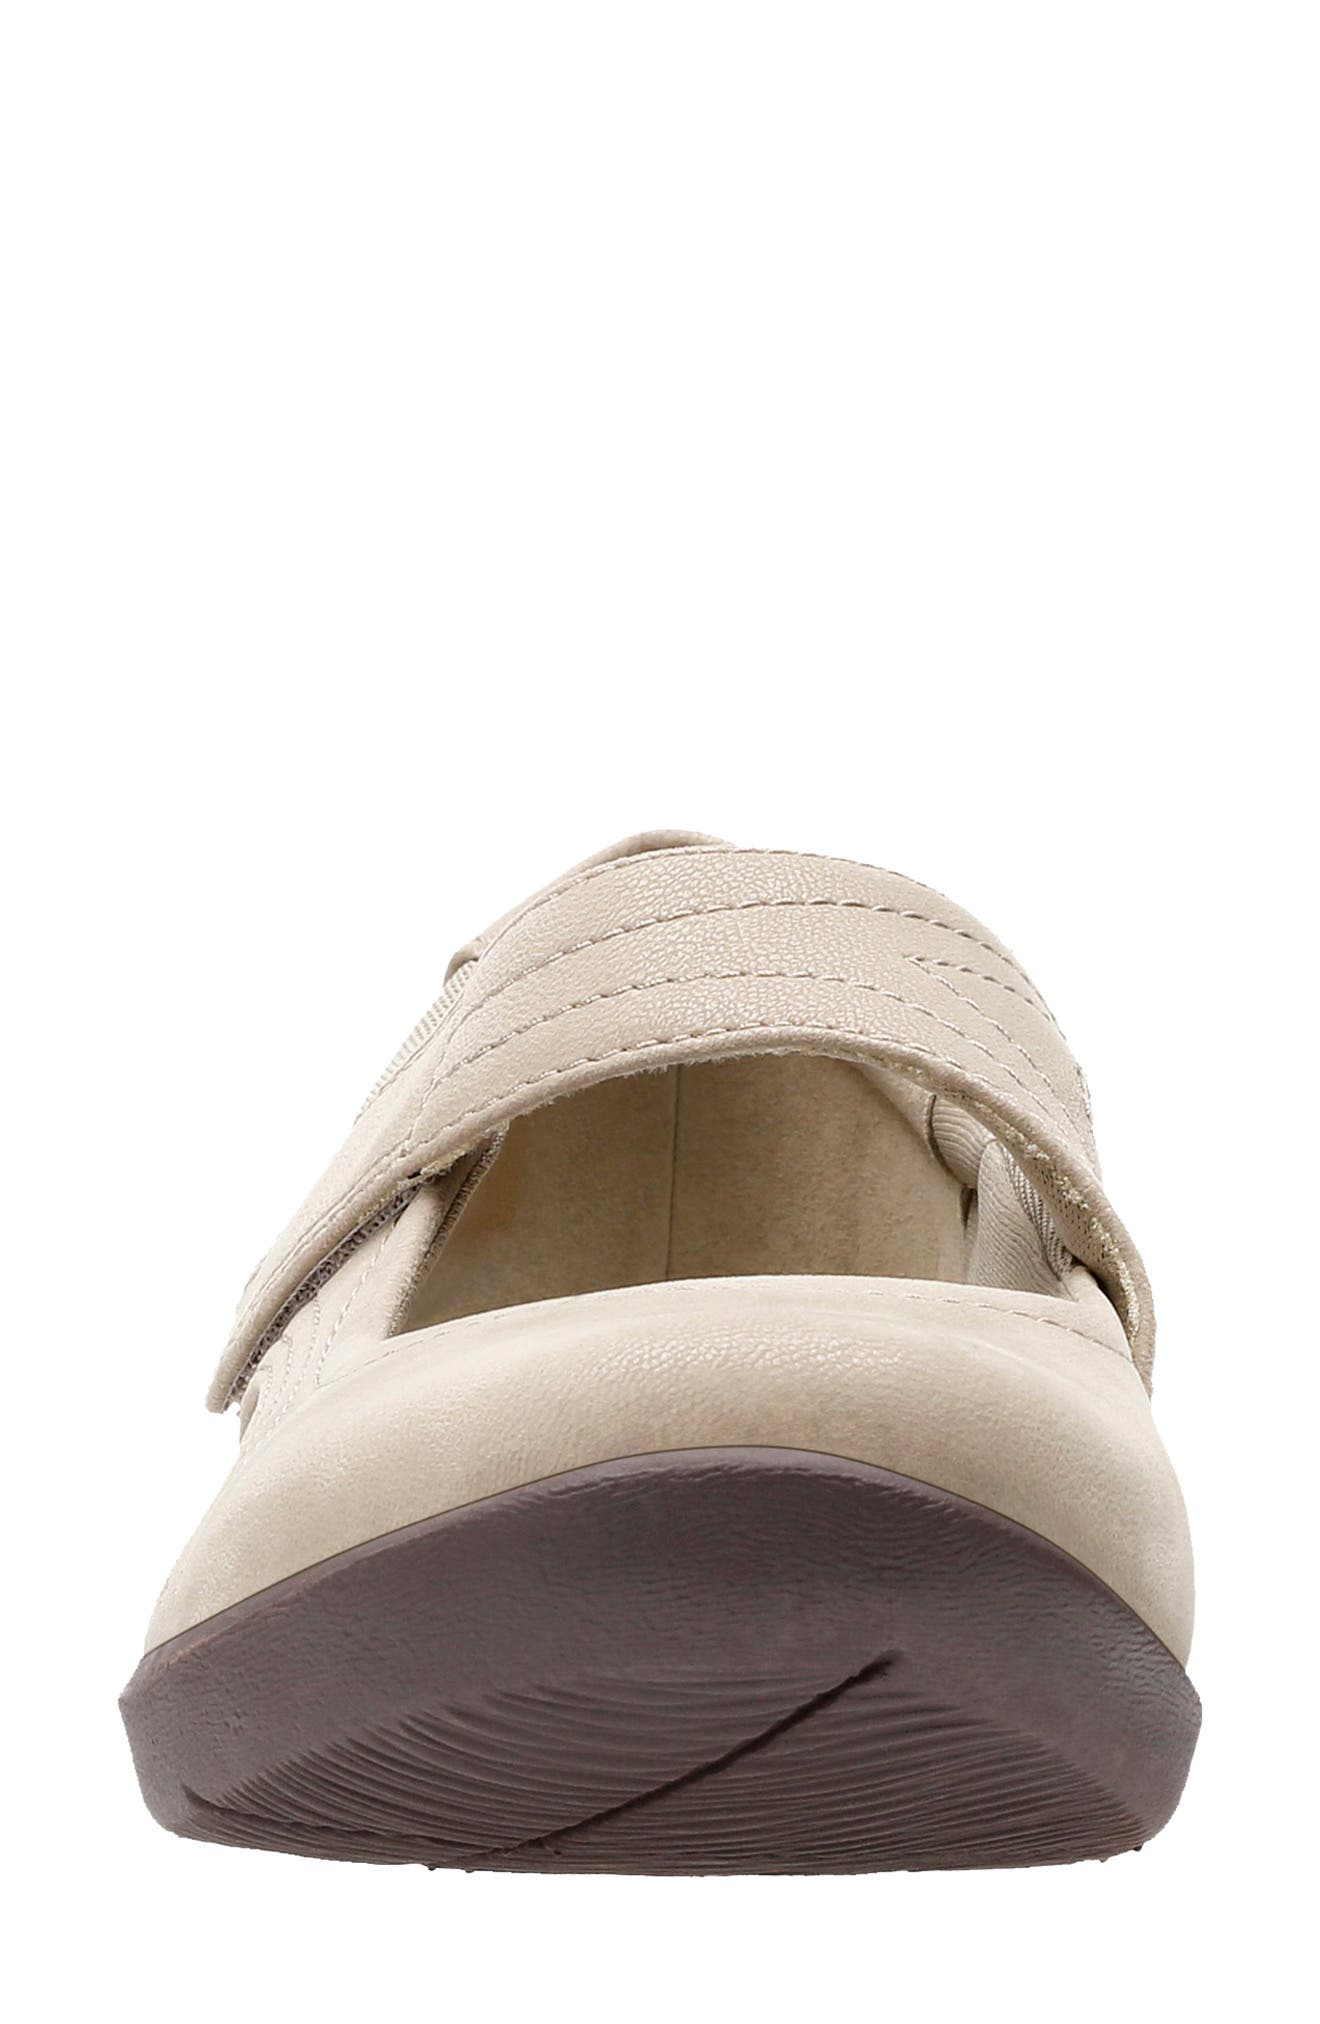 CLARKS<SUP>®</SUP>,                             Sillian Bella Mary Jane Flat,                             Alternate thumbnail 3, color,                             SAND SYNTHETIC NUBUCK